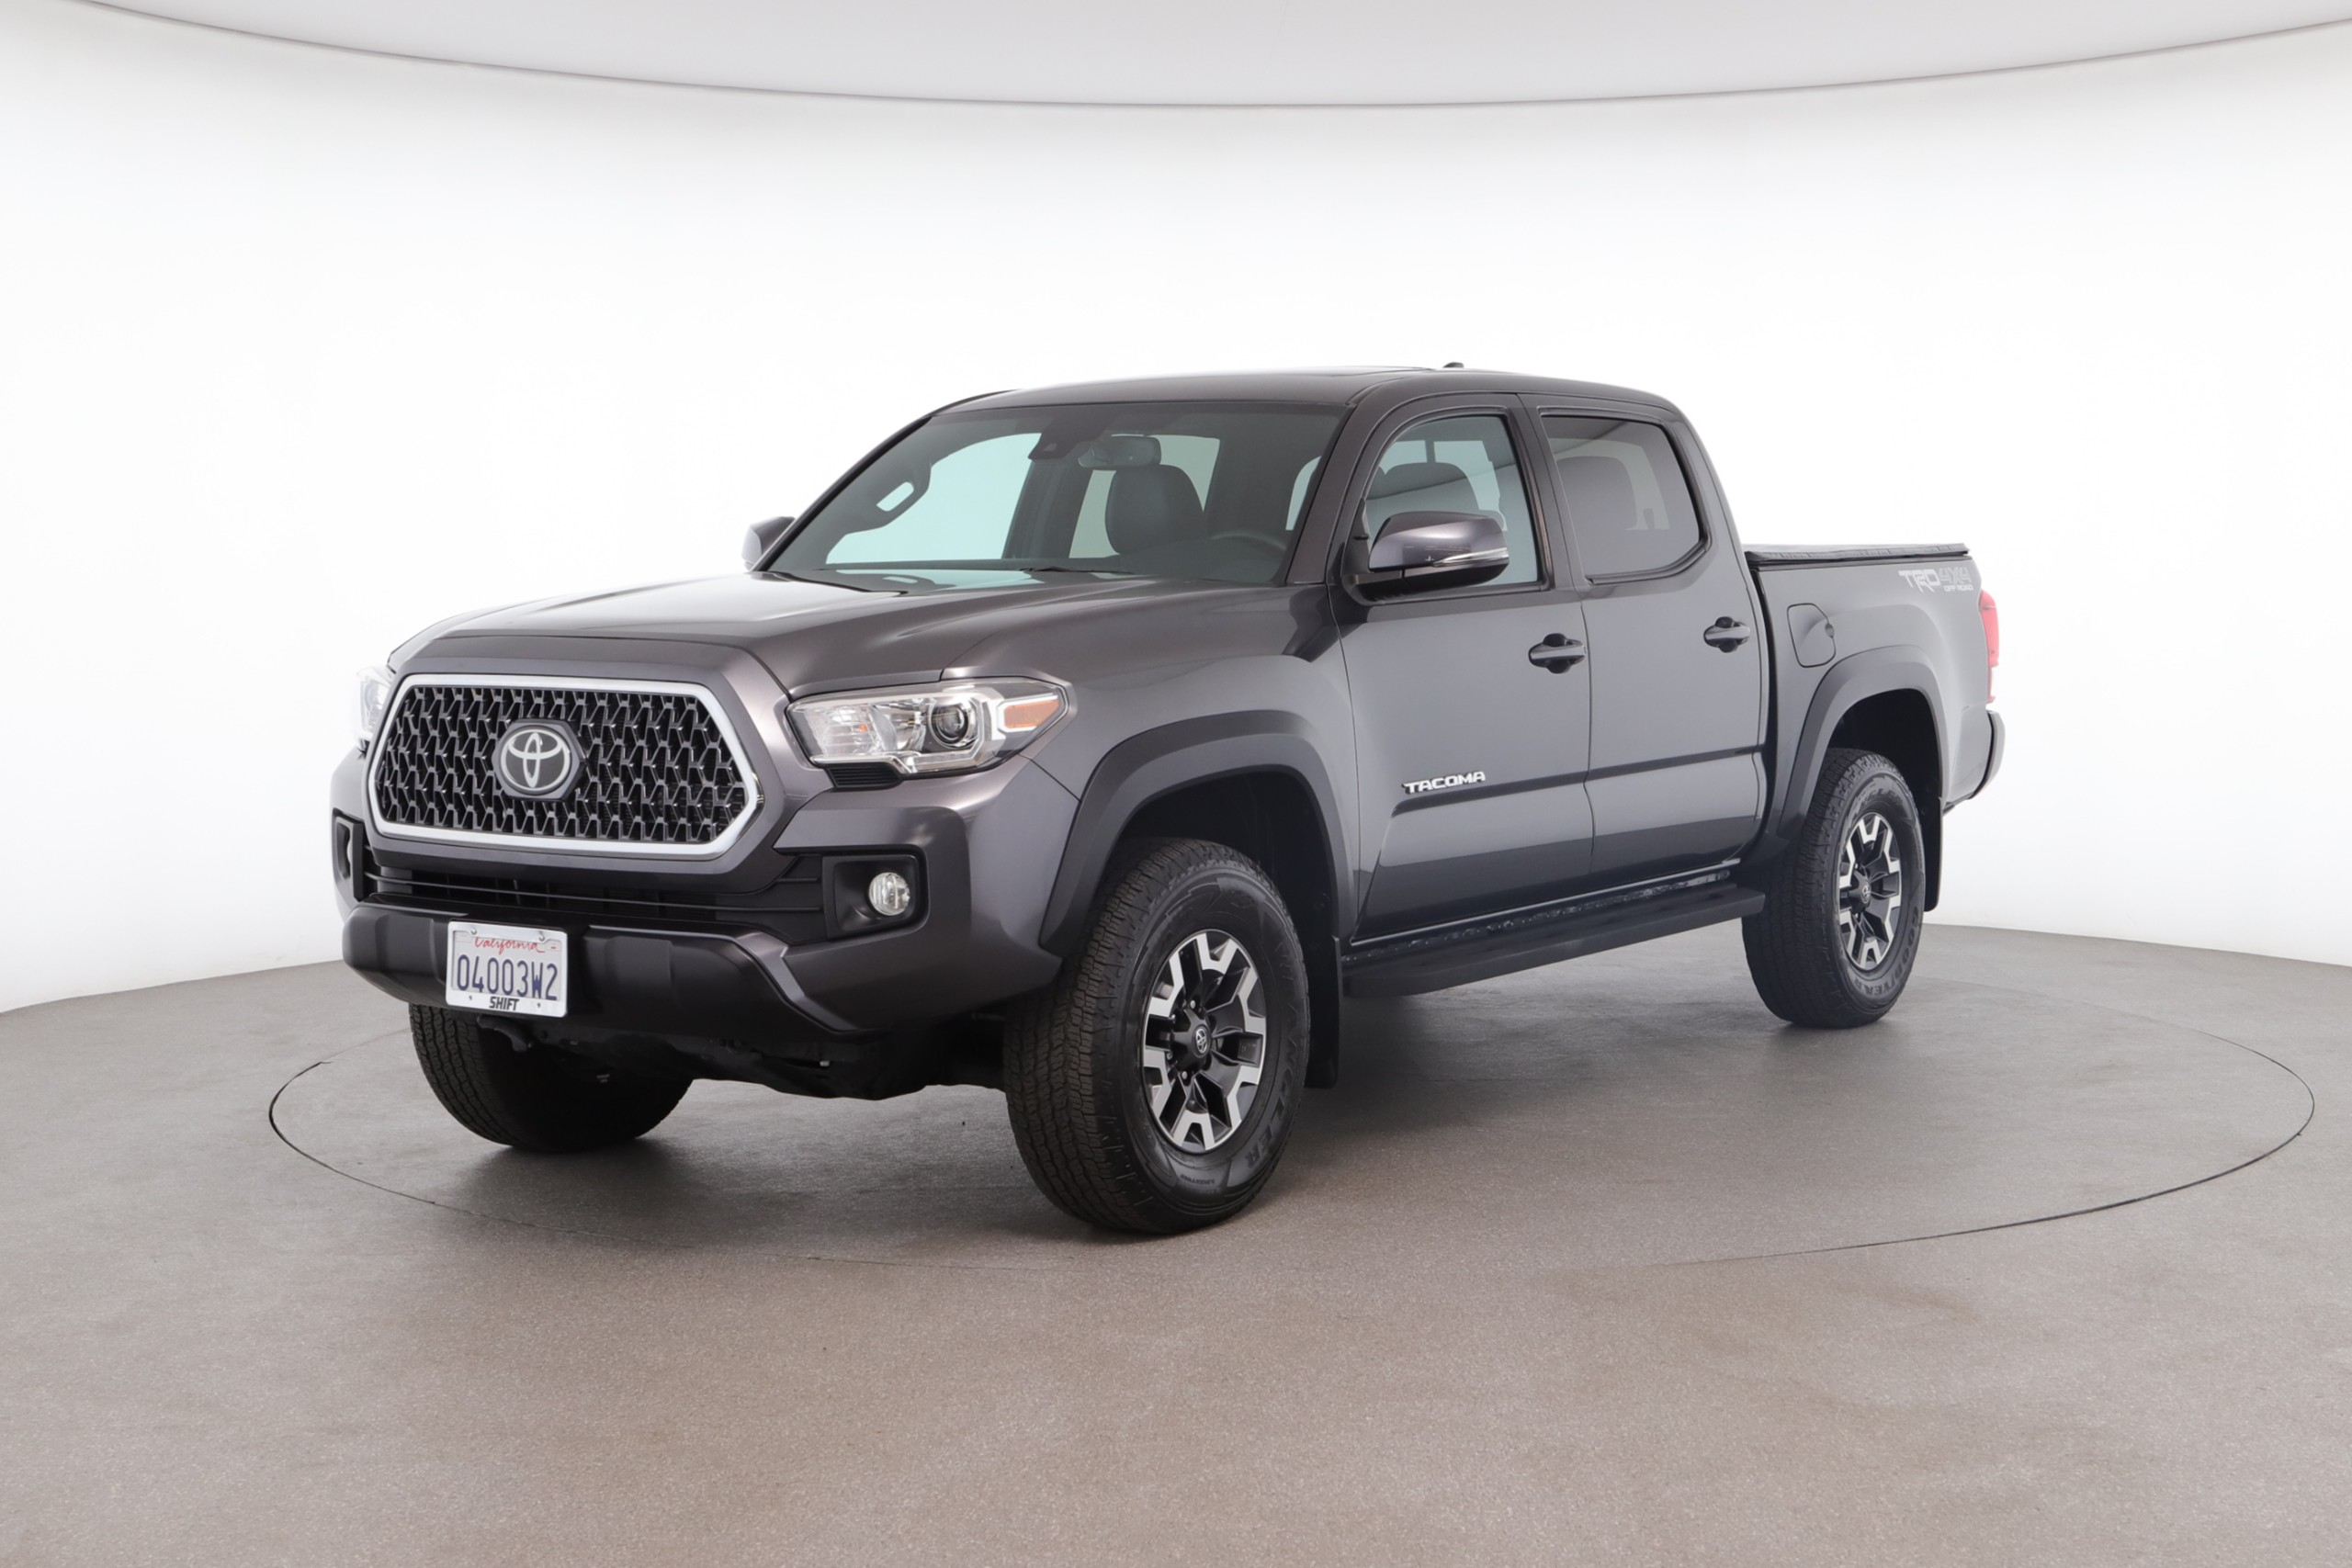 2019 Toyota Tacoma TRD Off Road (from $41,950)